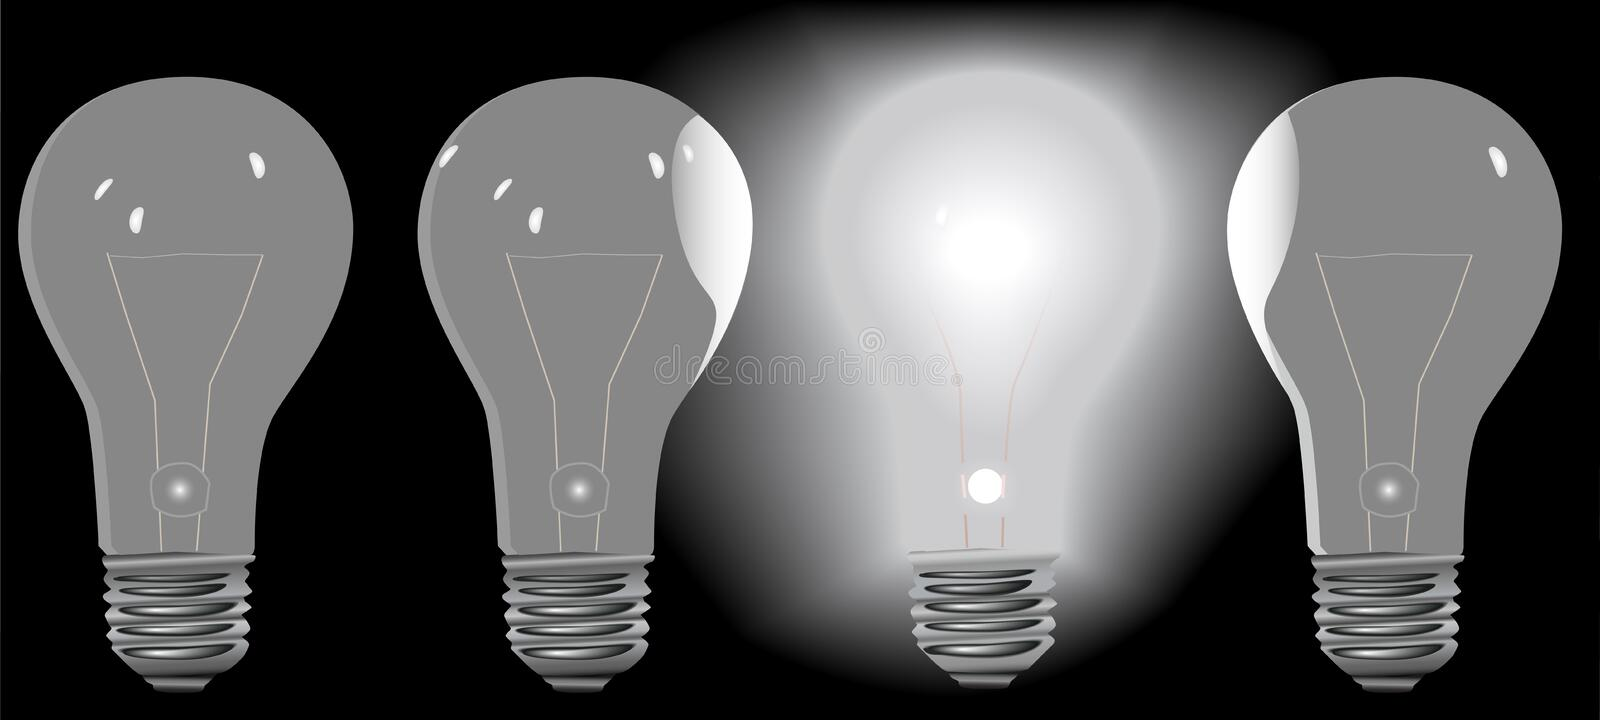 Download Four Light Bulbs In A Row 3 OFF 1 ON Royalty Free Stock Photography - Image: 4724047